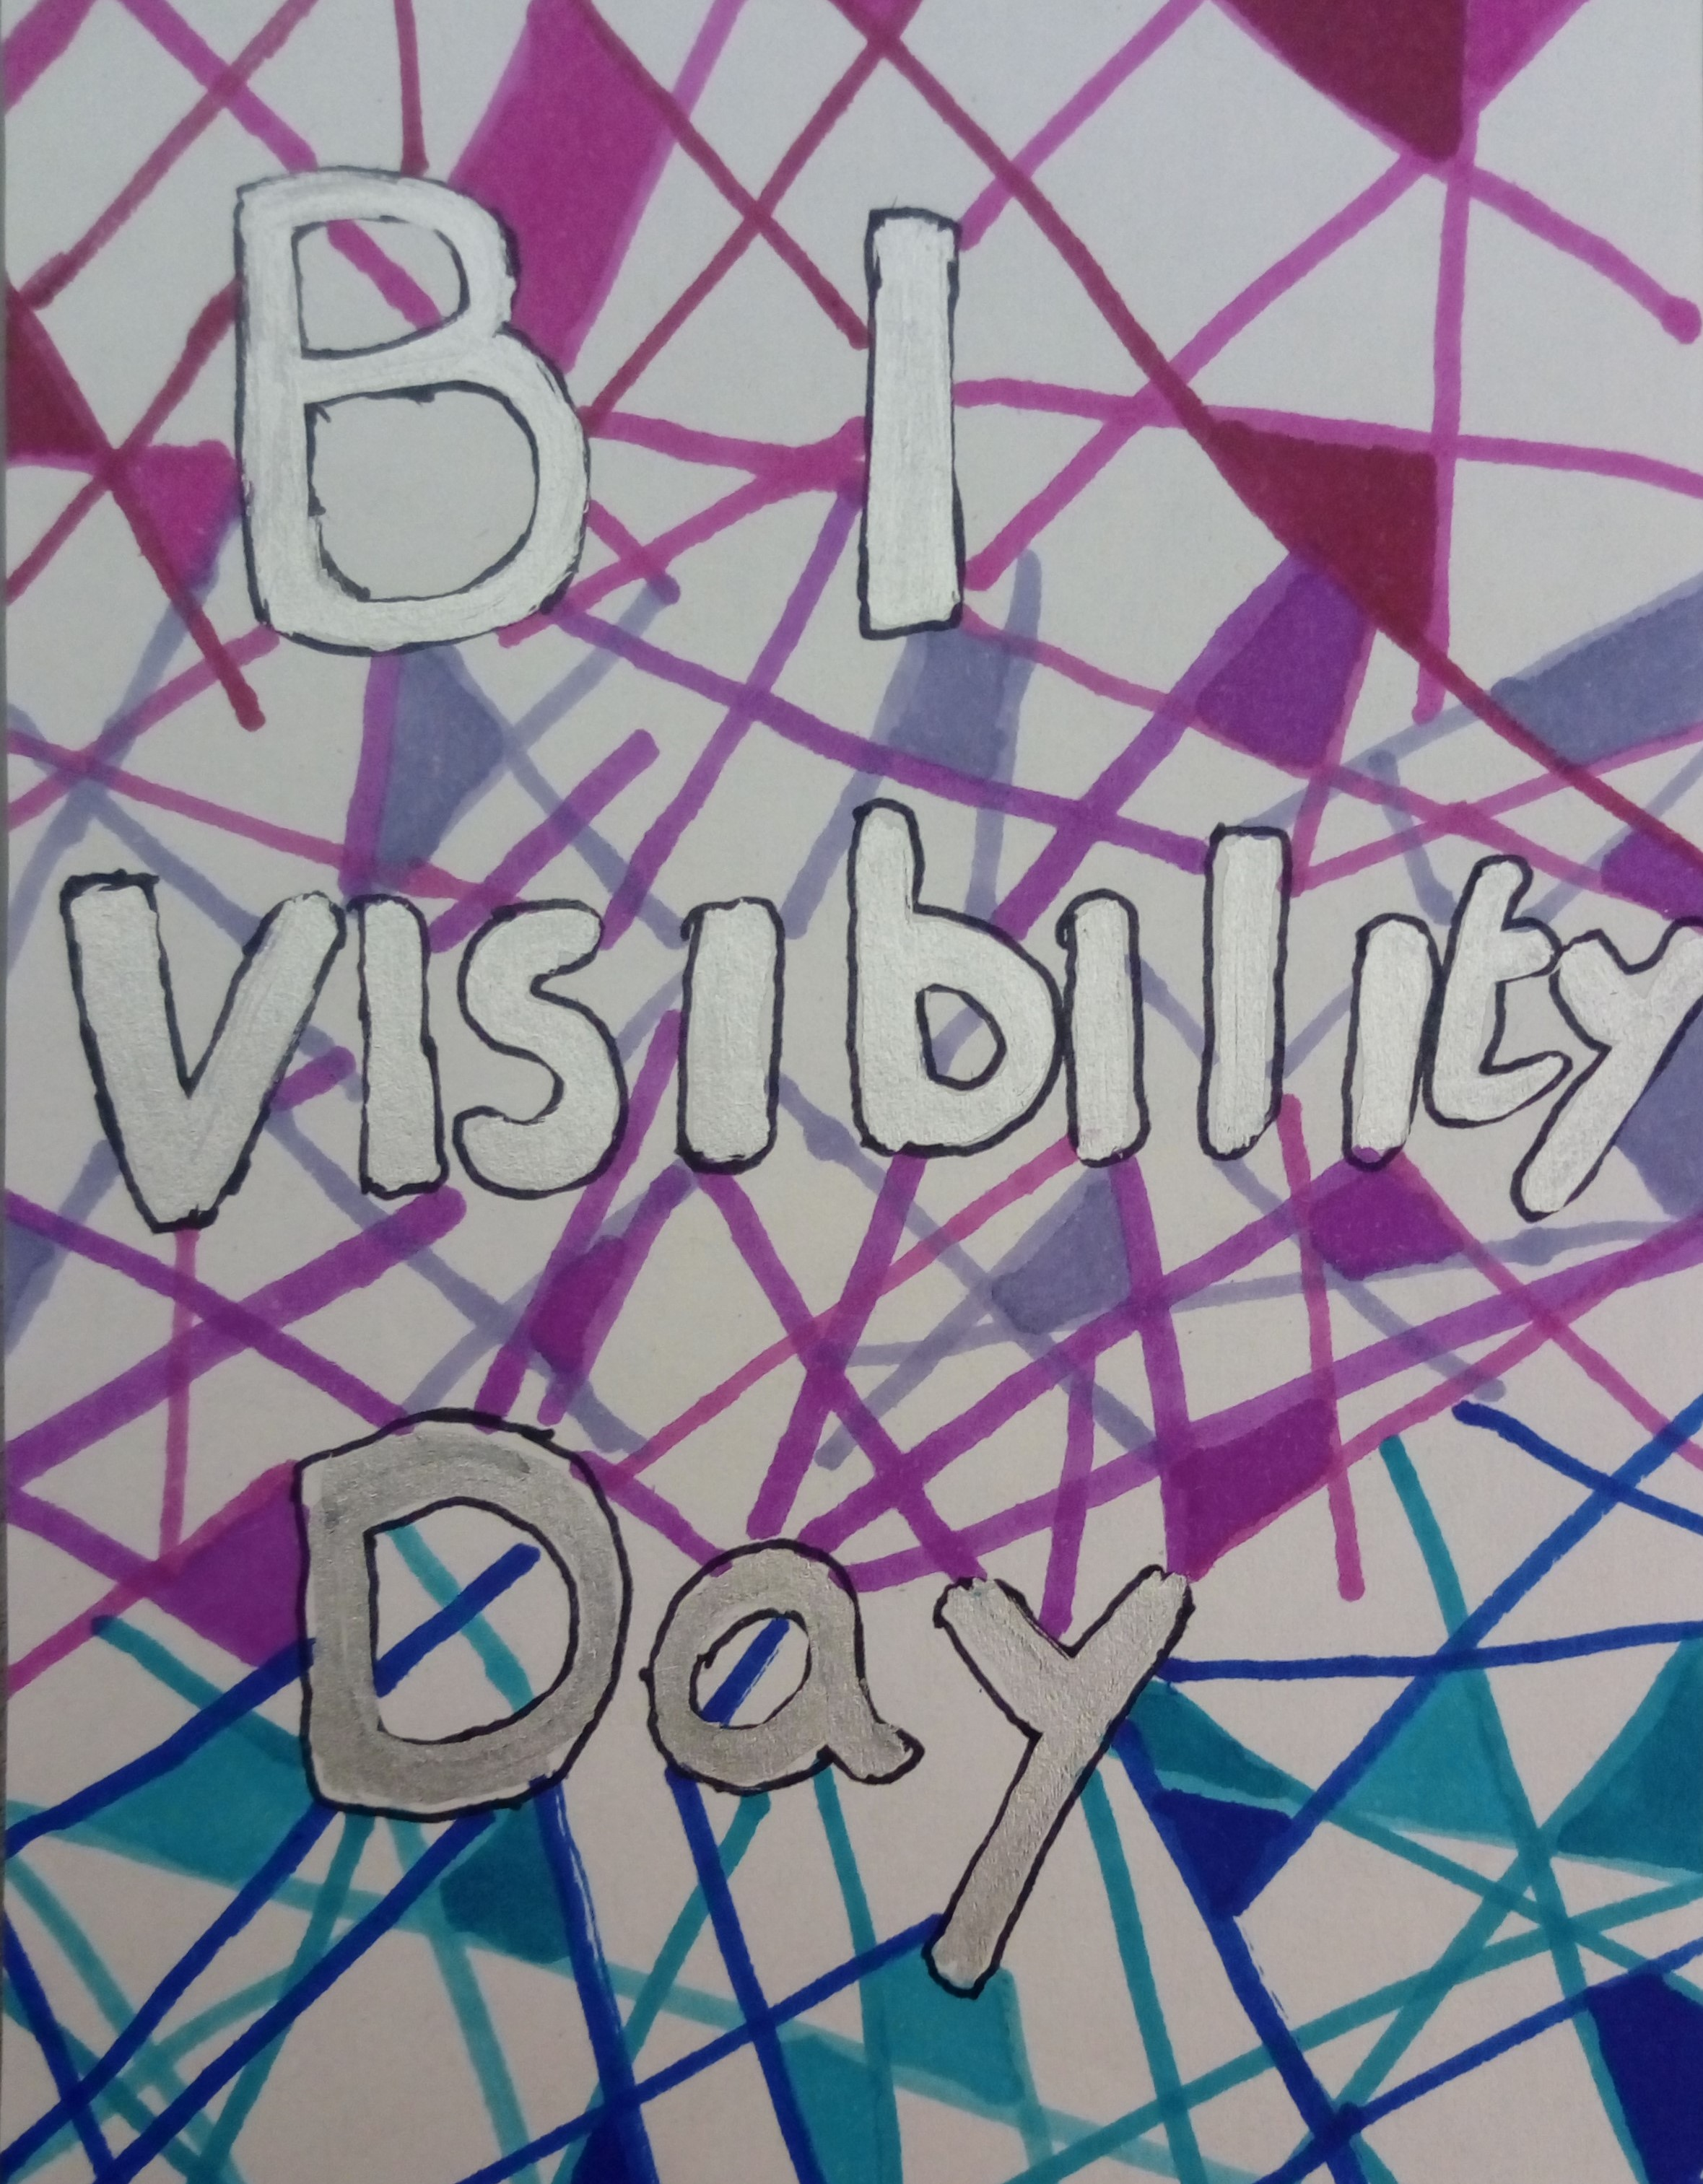 Bi Visibility Day drawing